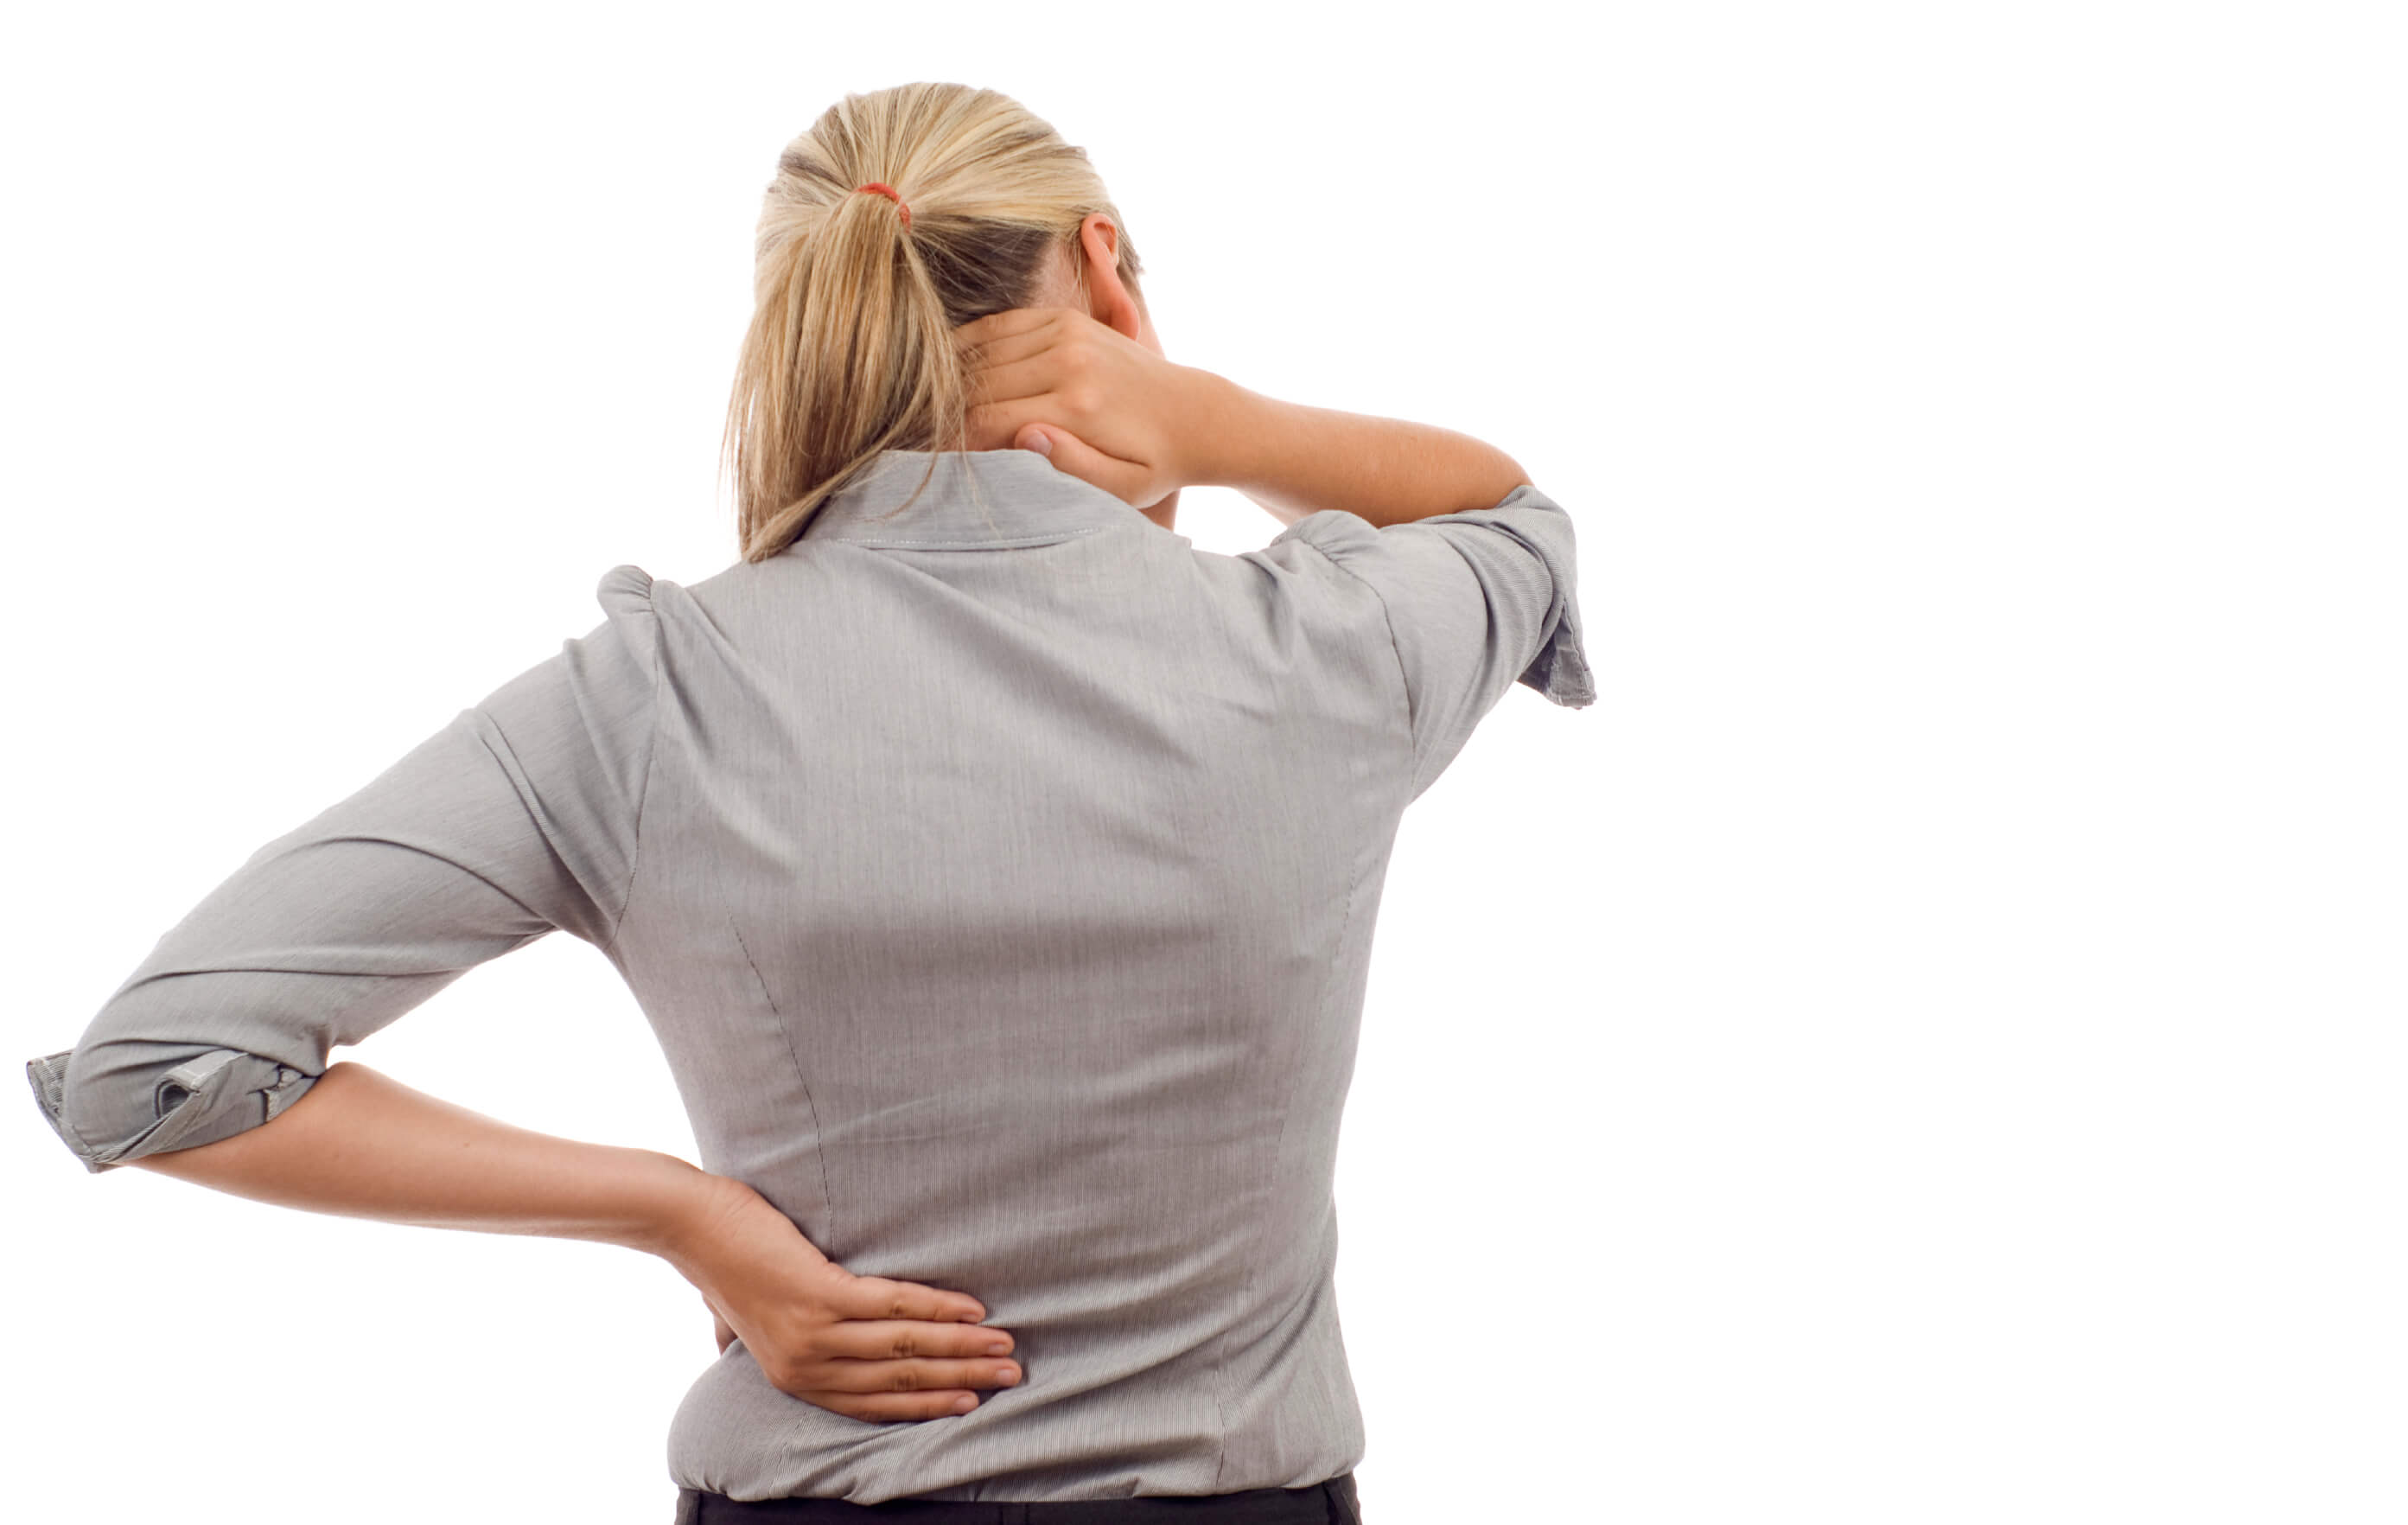 Fibromyalgia with Back pain